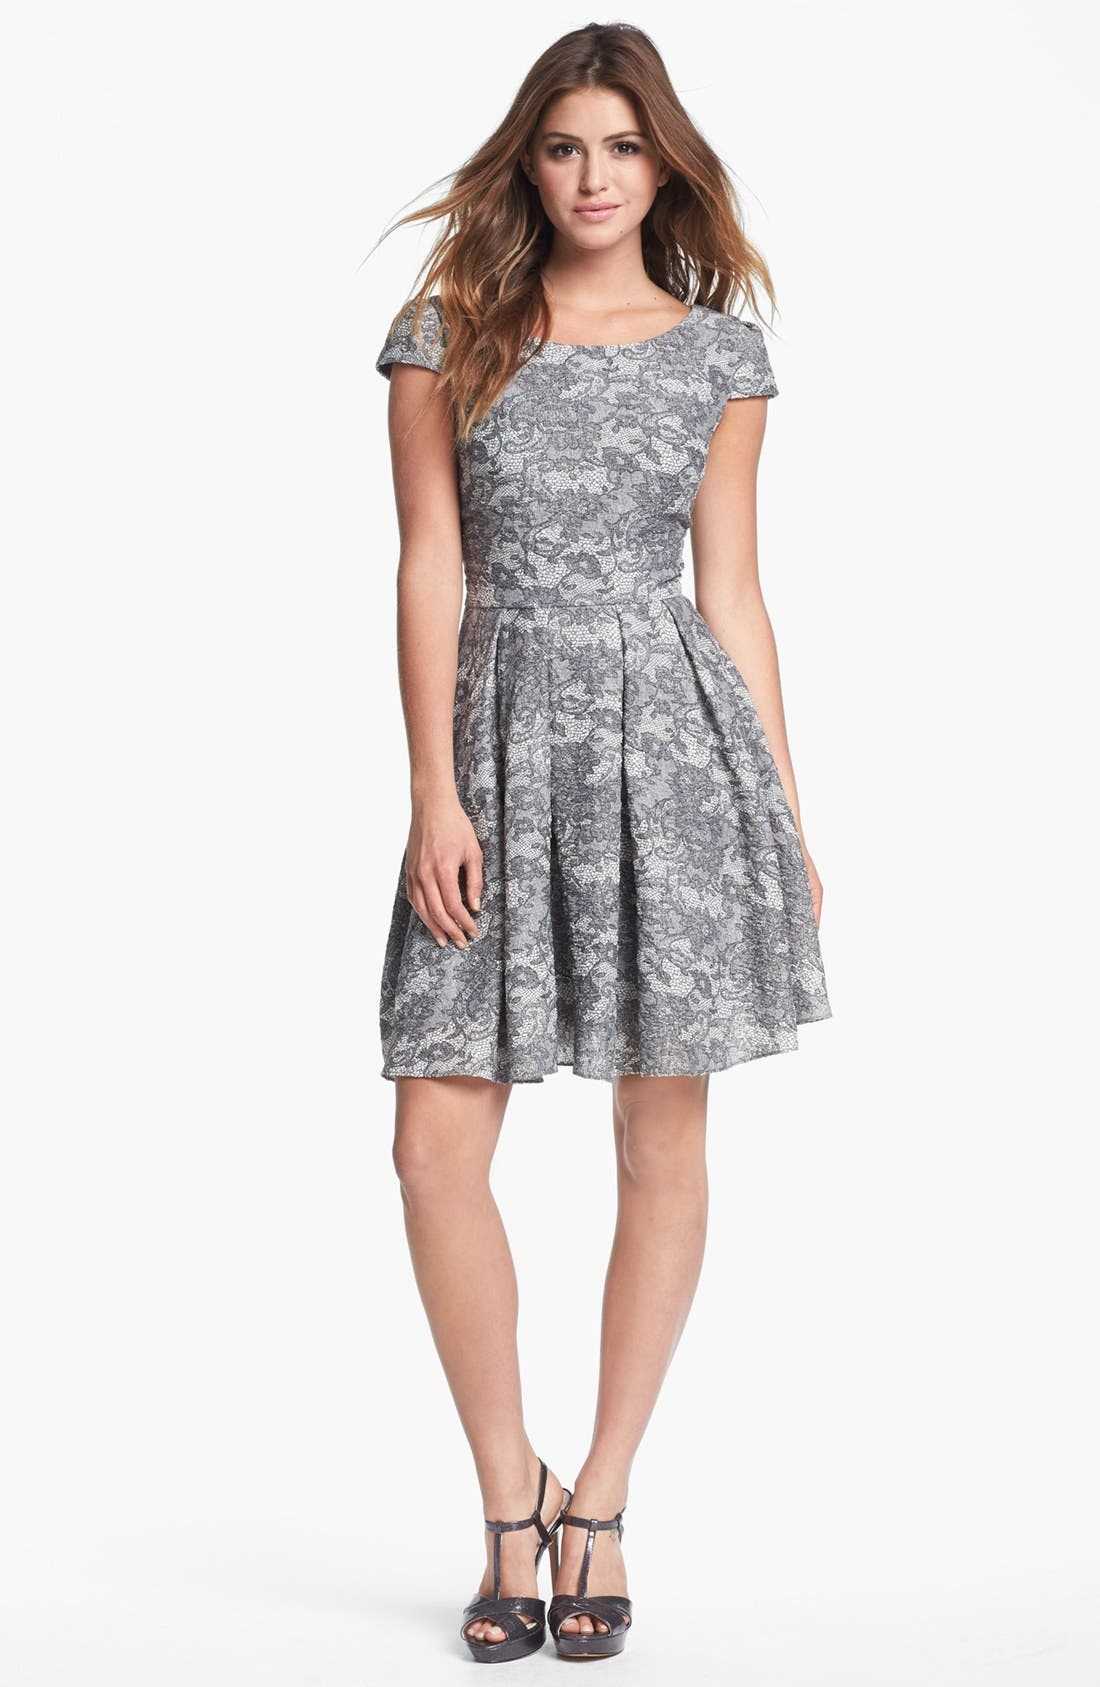 Alternate Image 1 Selected - Betsey Johnson Lace Print Fit & Flare Dress